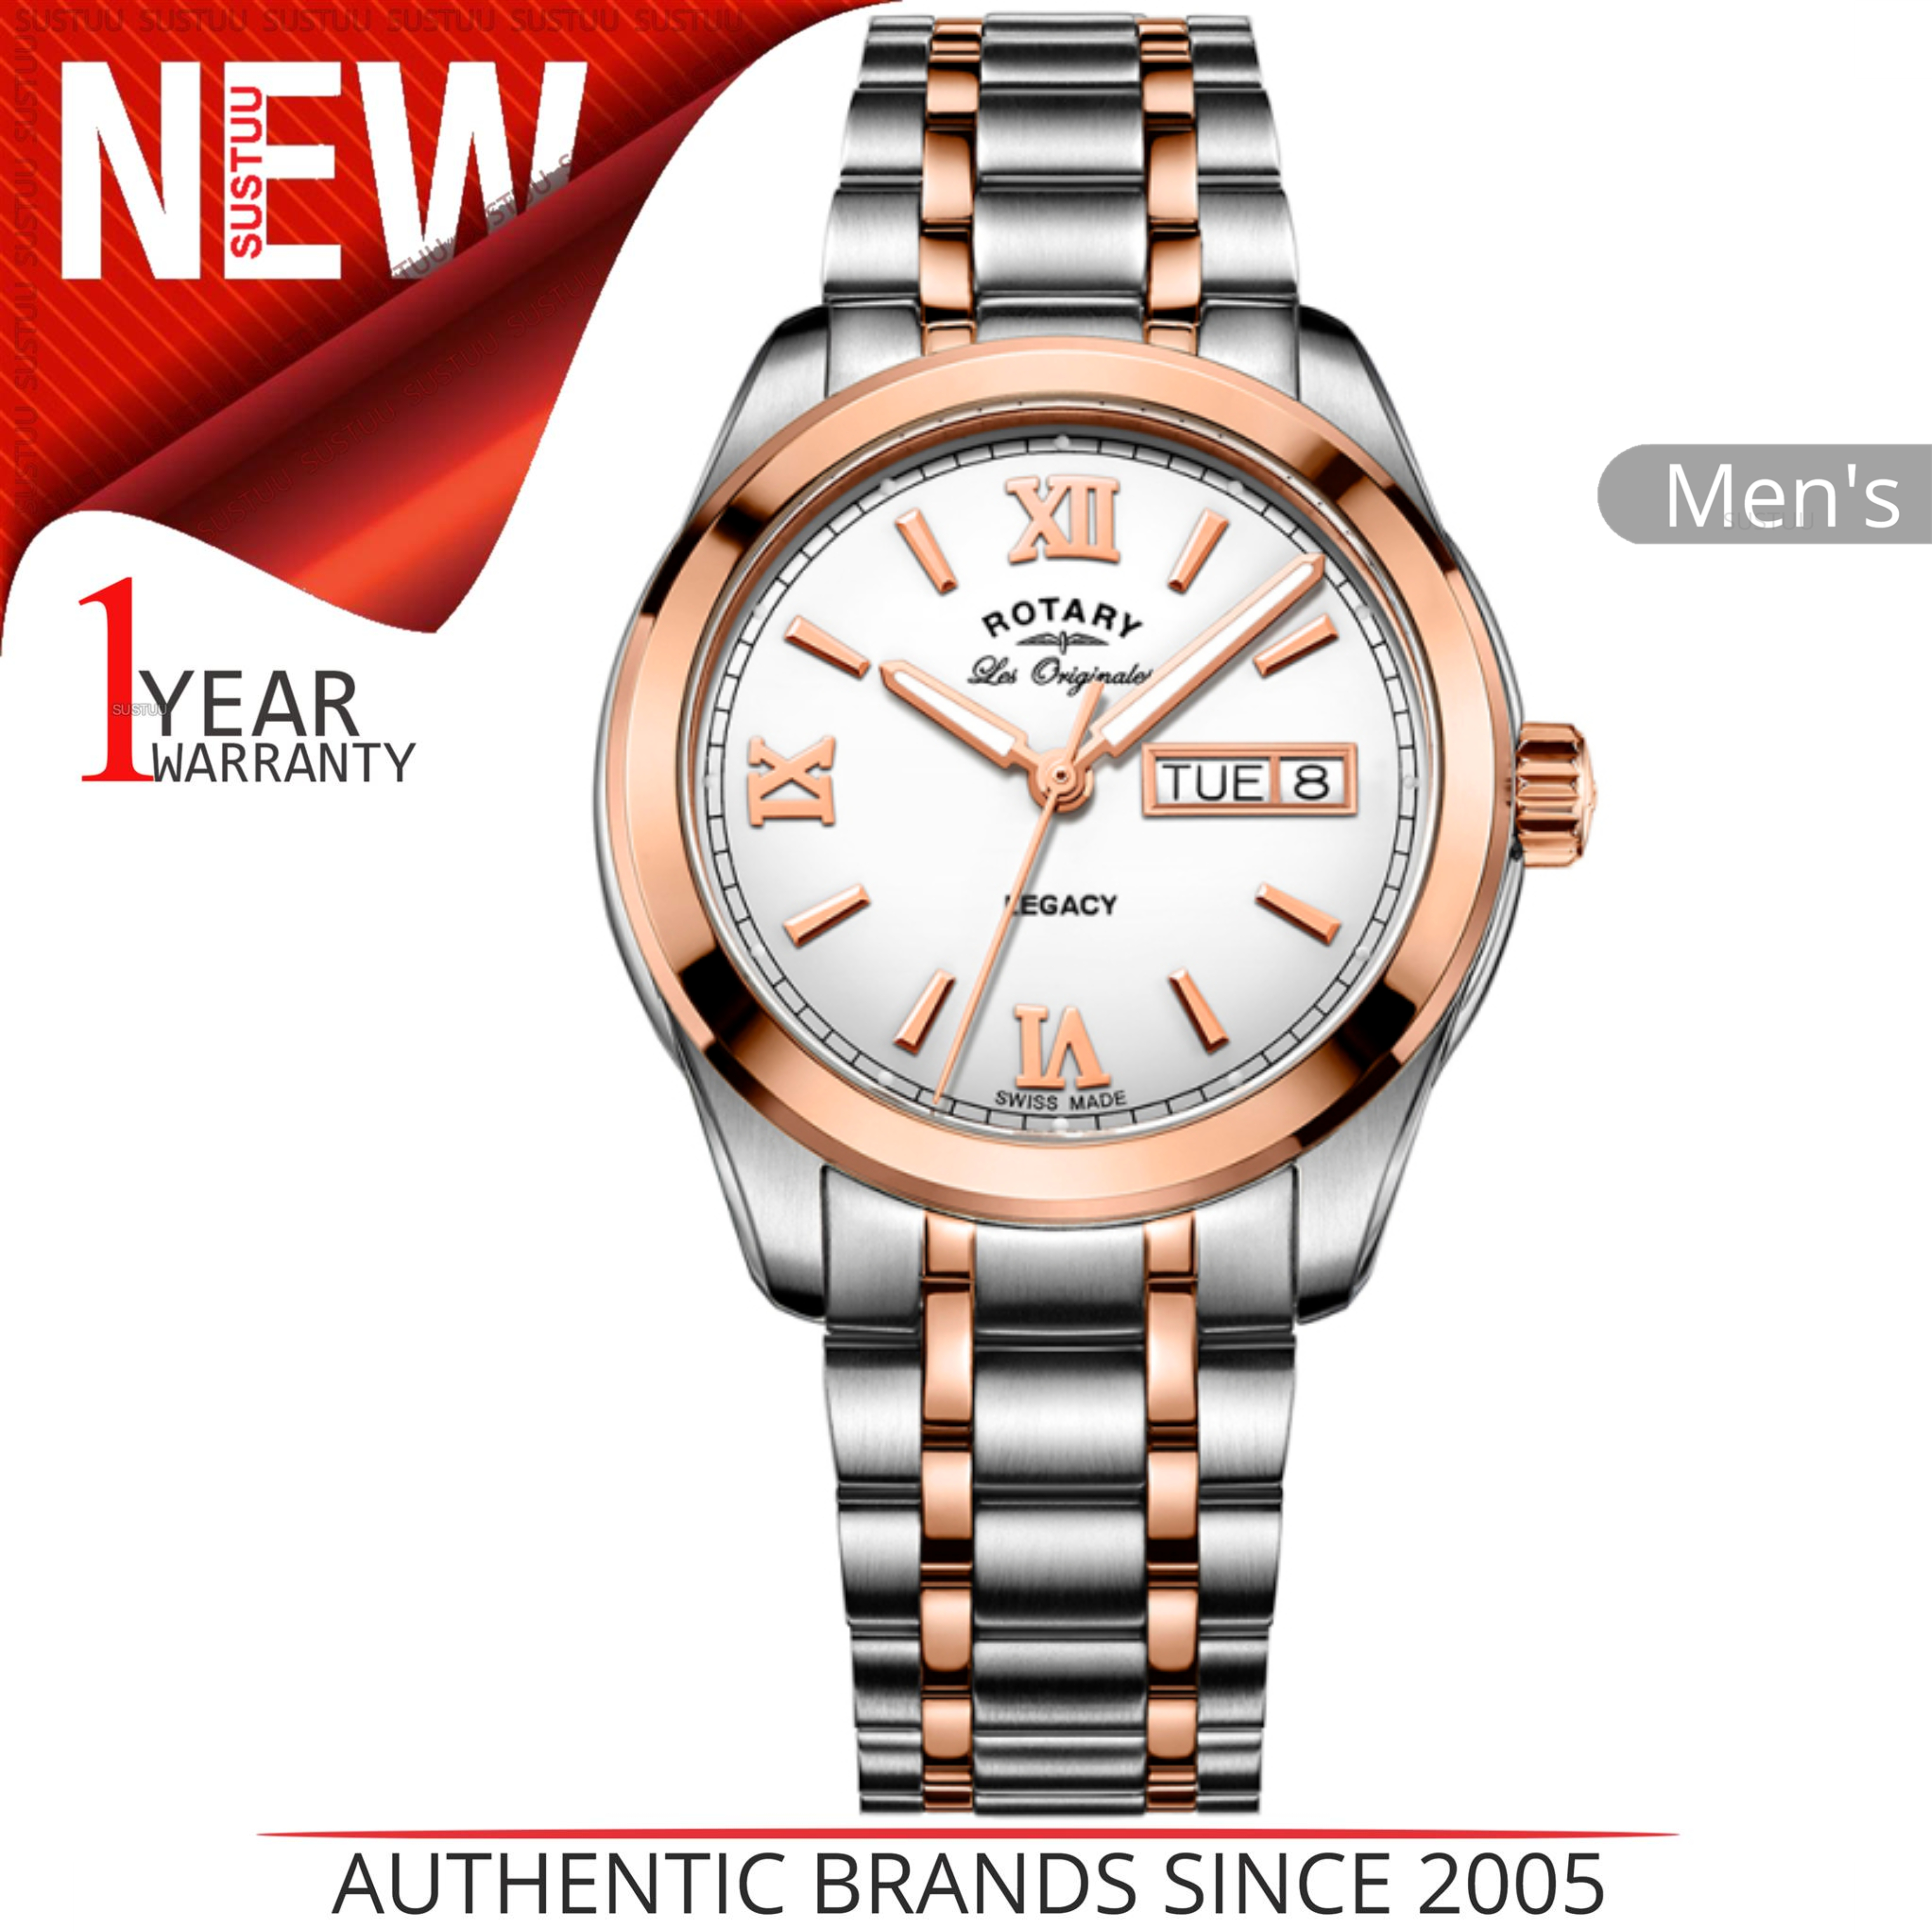 0e57686904f3 Details about Rotary Legacy Men s Watch│Roman Numerals Dial│Dual Tone  Bracelet Band│GB90175 06